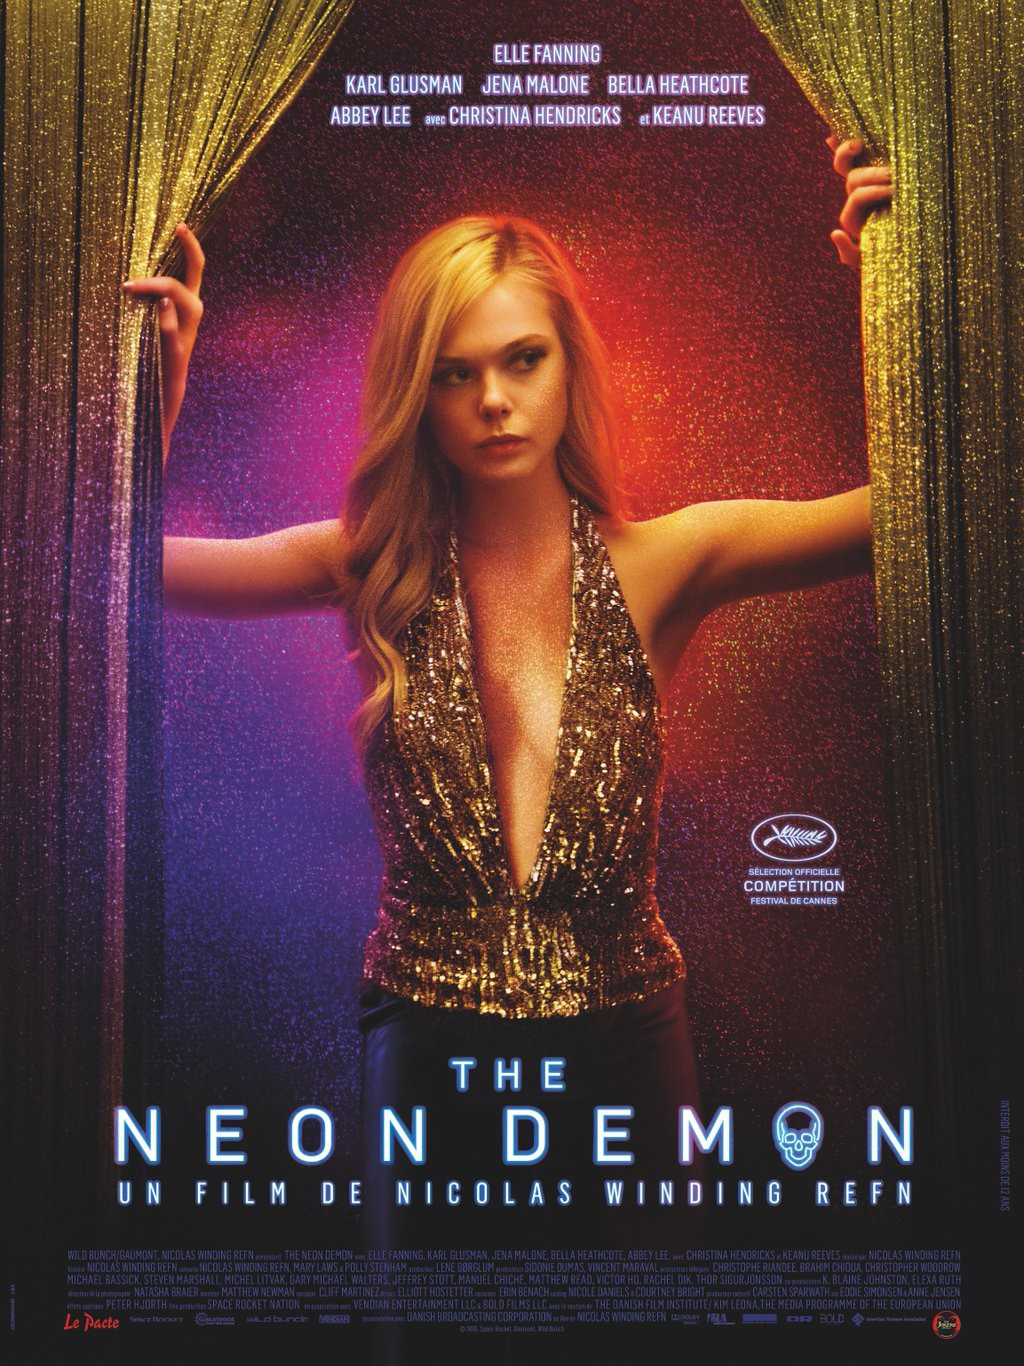 5 - The Neon Demon